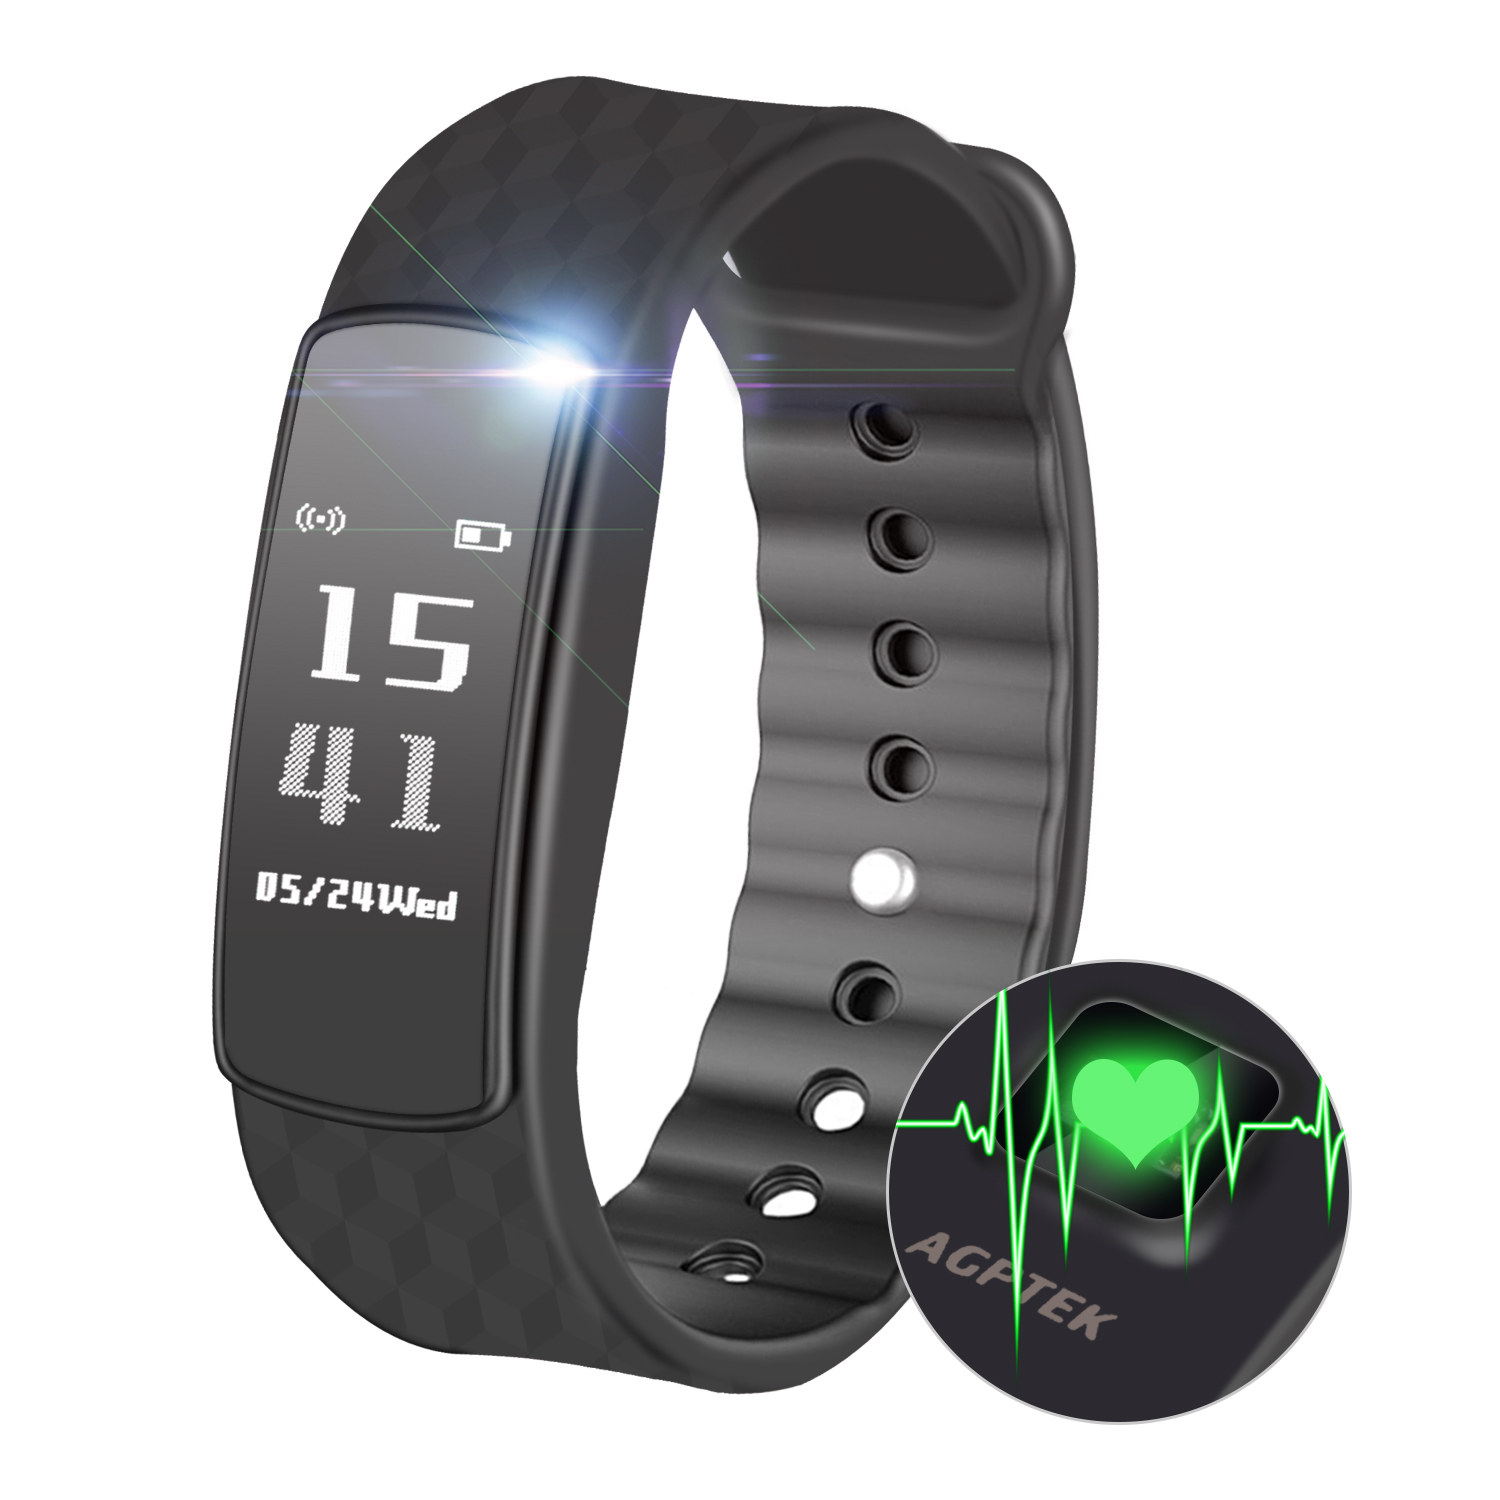 AGPTEK Fitness Tracker, Smartwatch Wristband Bluetooth 4.0 Touch Screen with Heart Rate / Sleep Monitor / Pedometer / Calorie Counter / Notifications for IOS Android Smartphones, Black